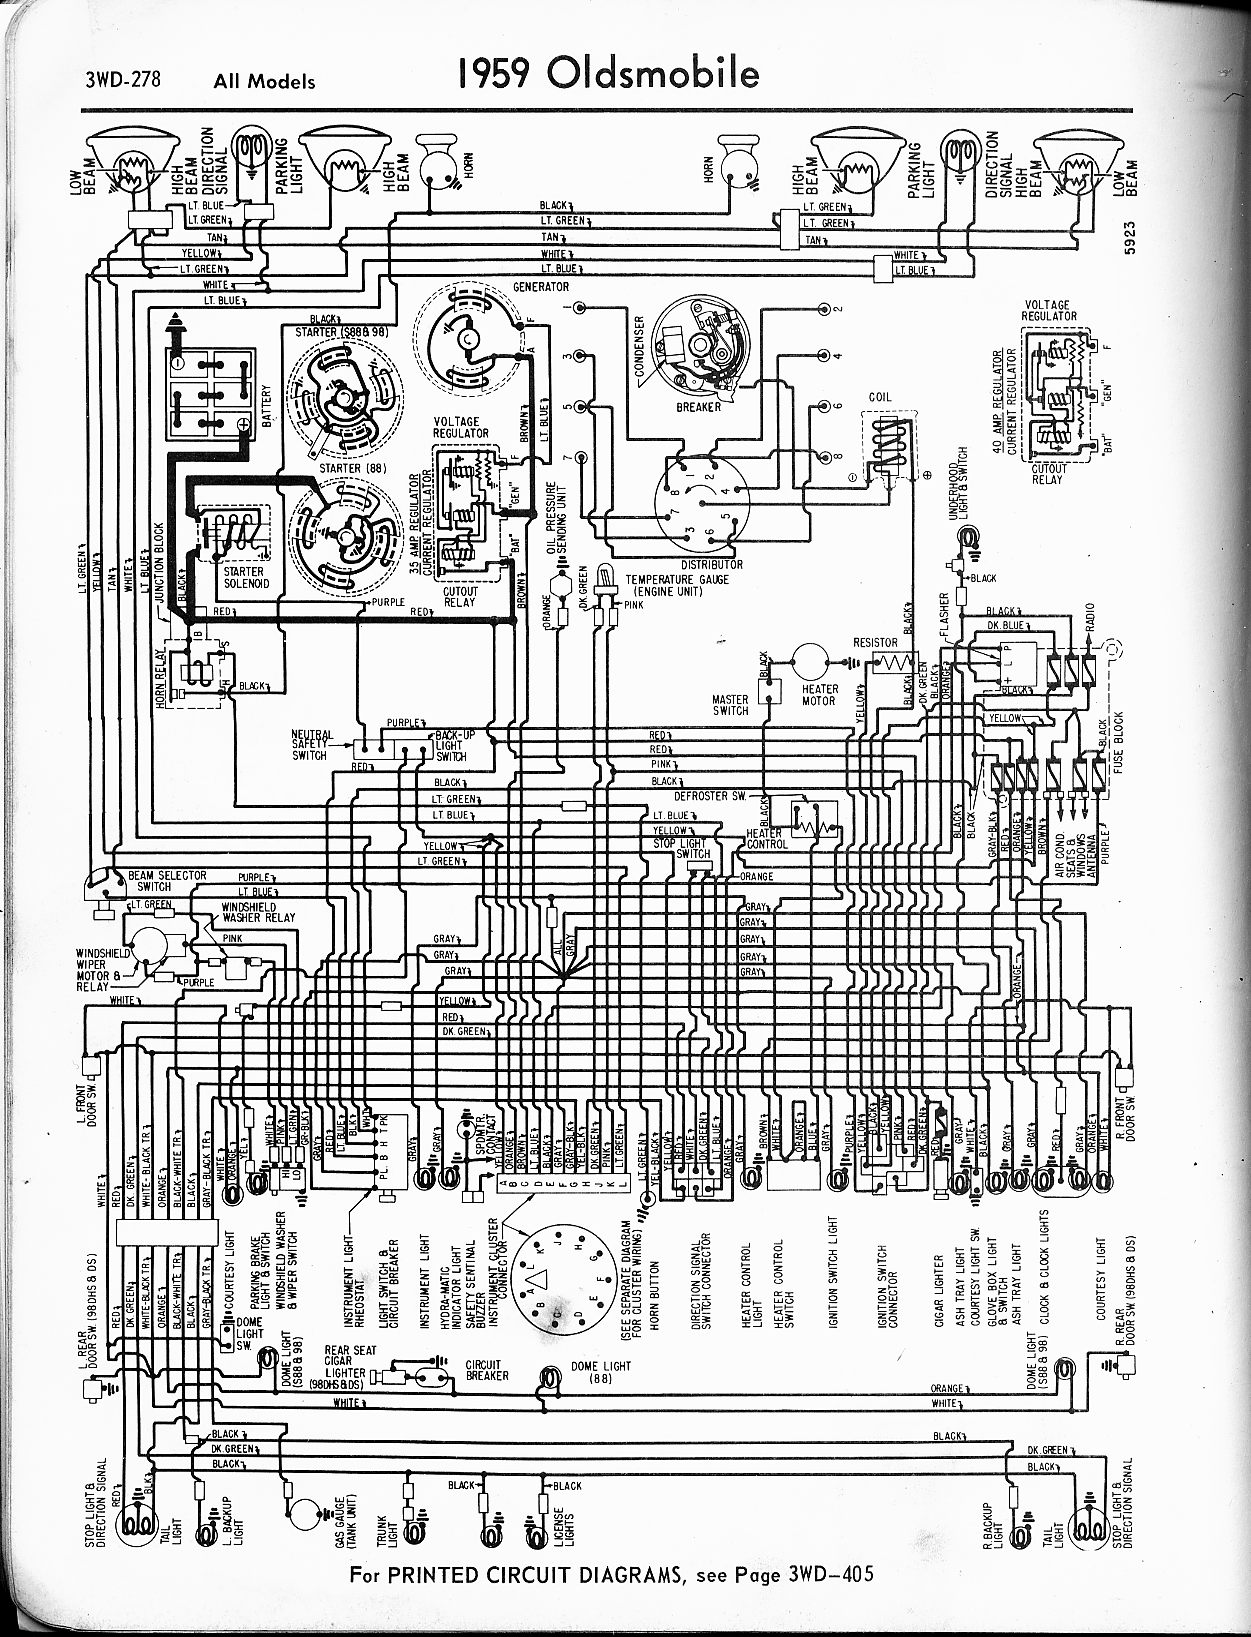 MWire5765 278?quality\\\=80\\\&strip\\\=all diagrams 10961188 layout for 2003 sienna fuse box toyota sienna 2004 toyota sienna fuse box diagram at bakdesigns.co